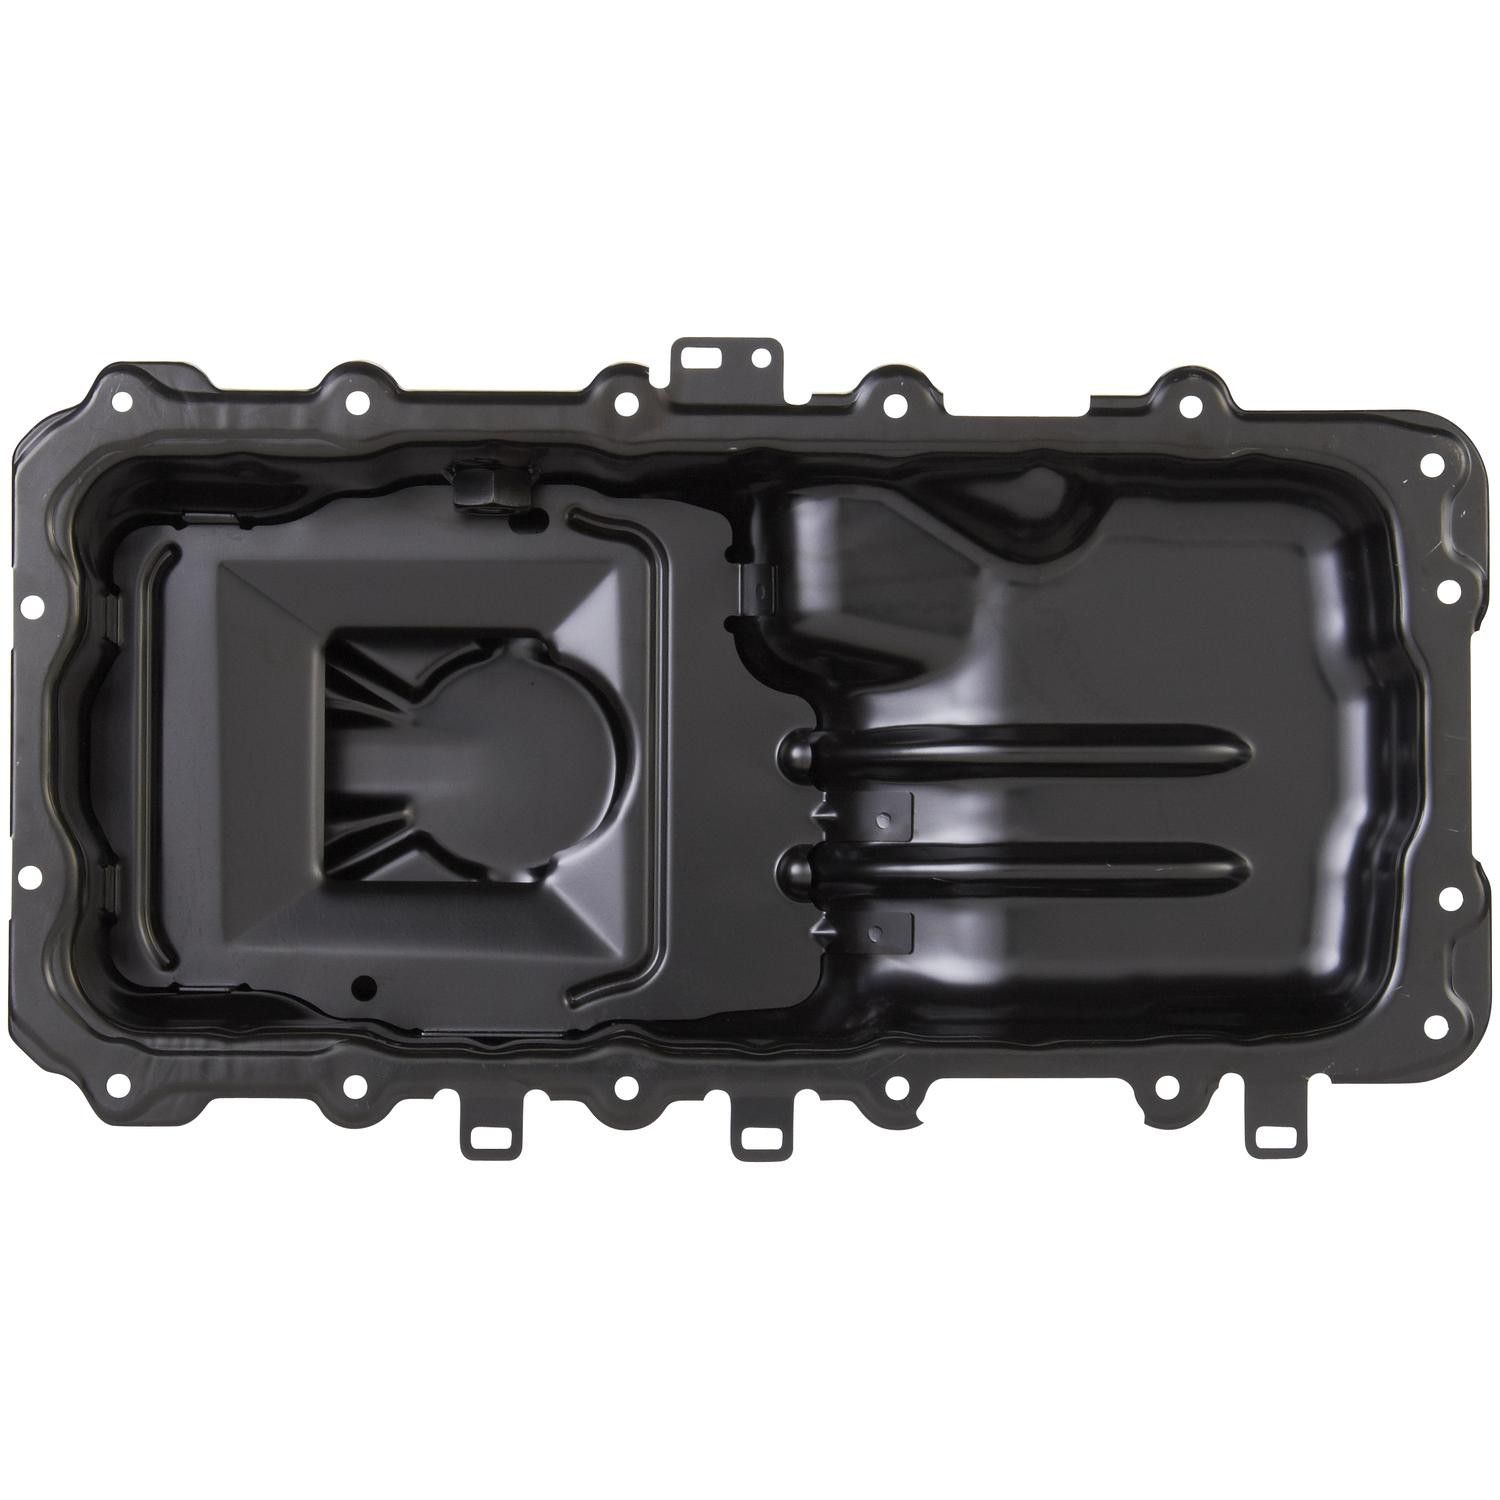 Engine Oil Pan Spectra FP77A